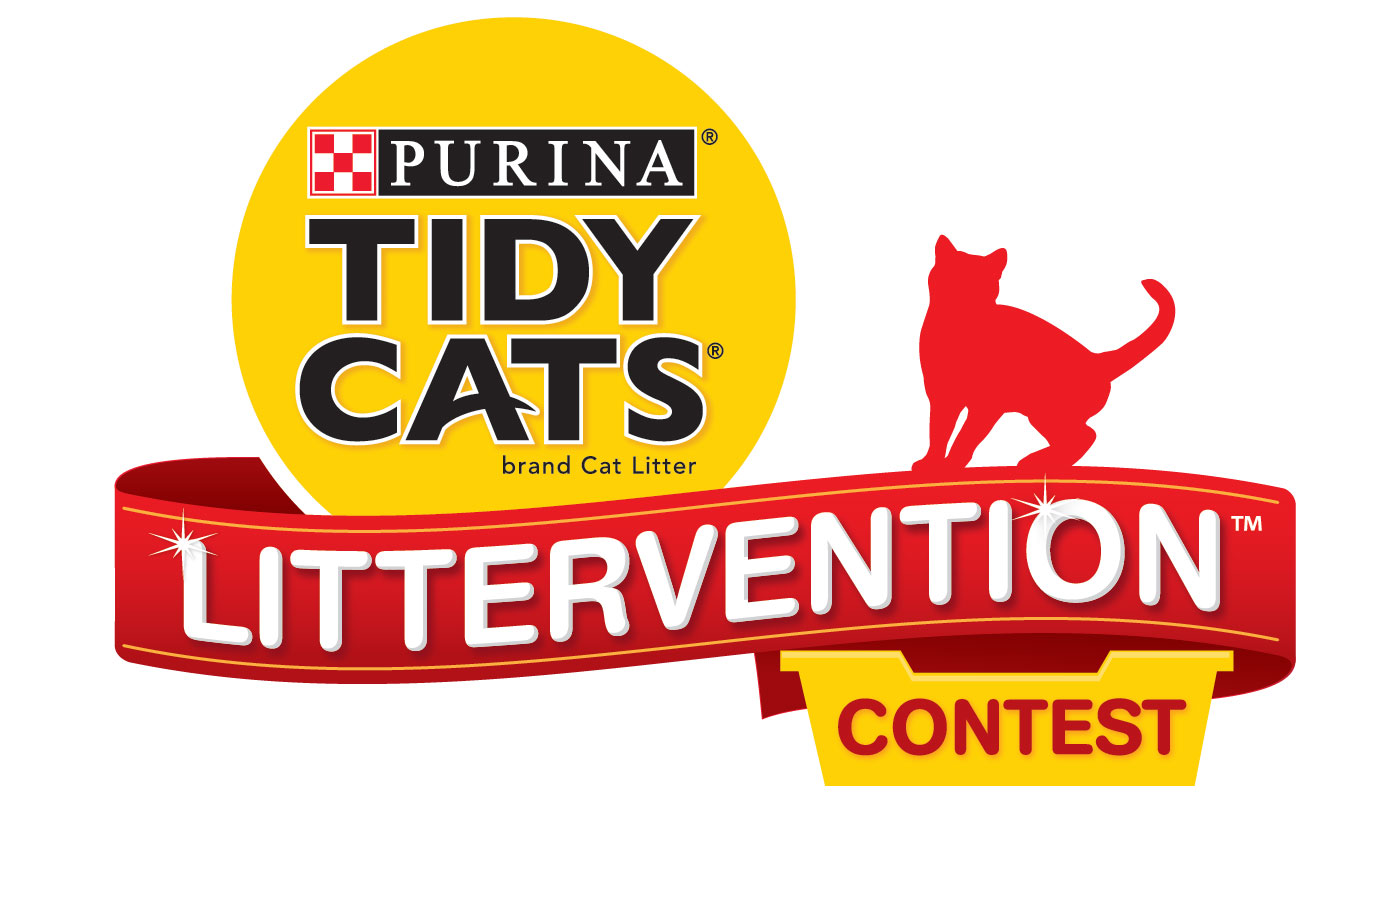 http://www.multivu.com/players/English/7423651-tidy-cats-littervention/gallery/image/eb999534-86fc-4ff4-ac12-bb029490e17b.HR.jpg